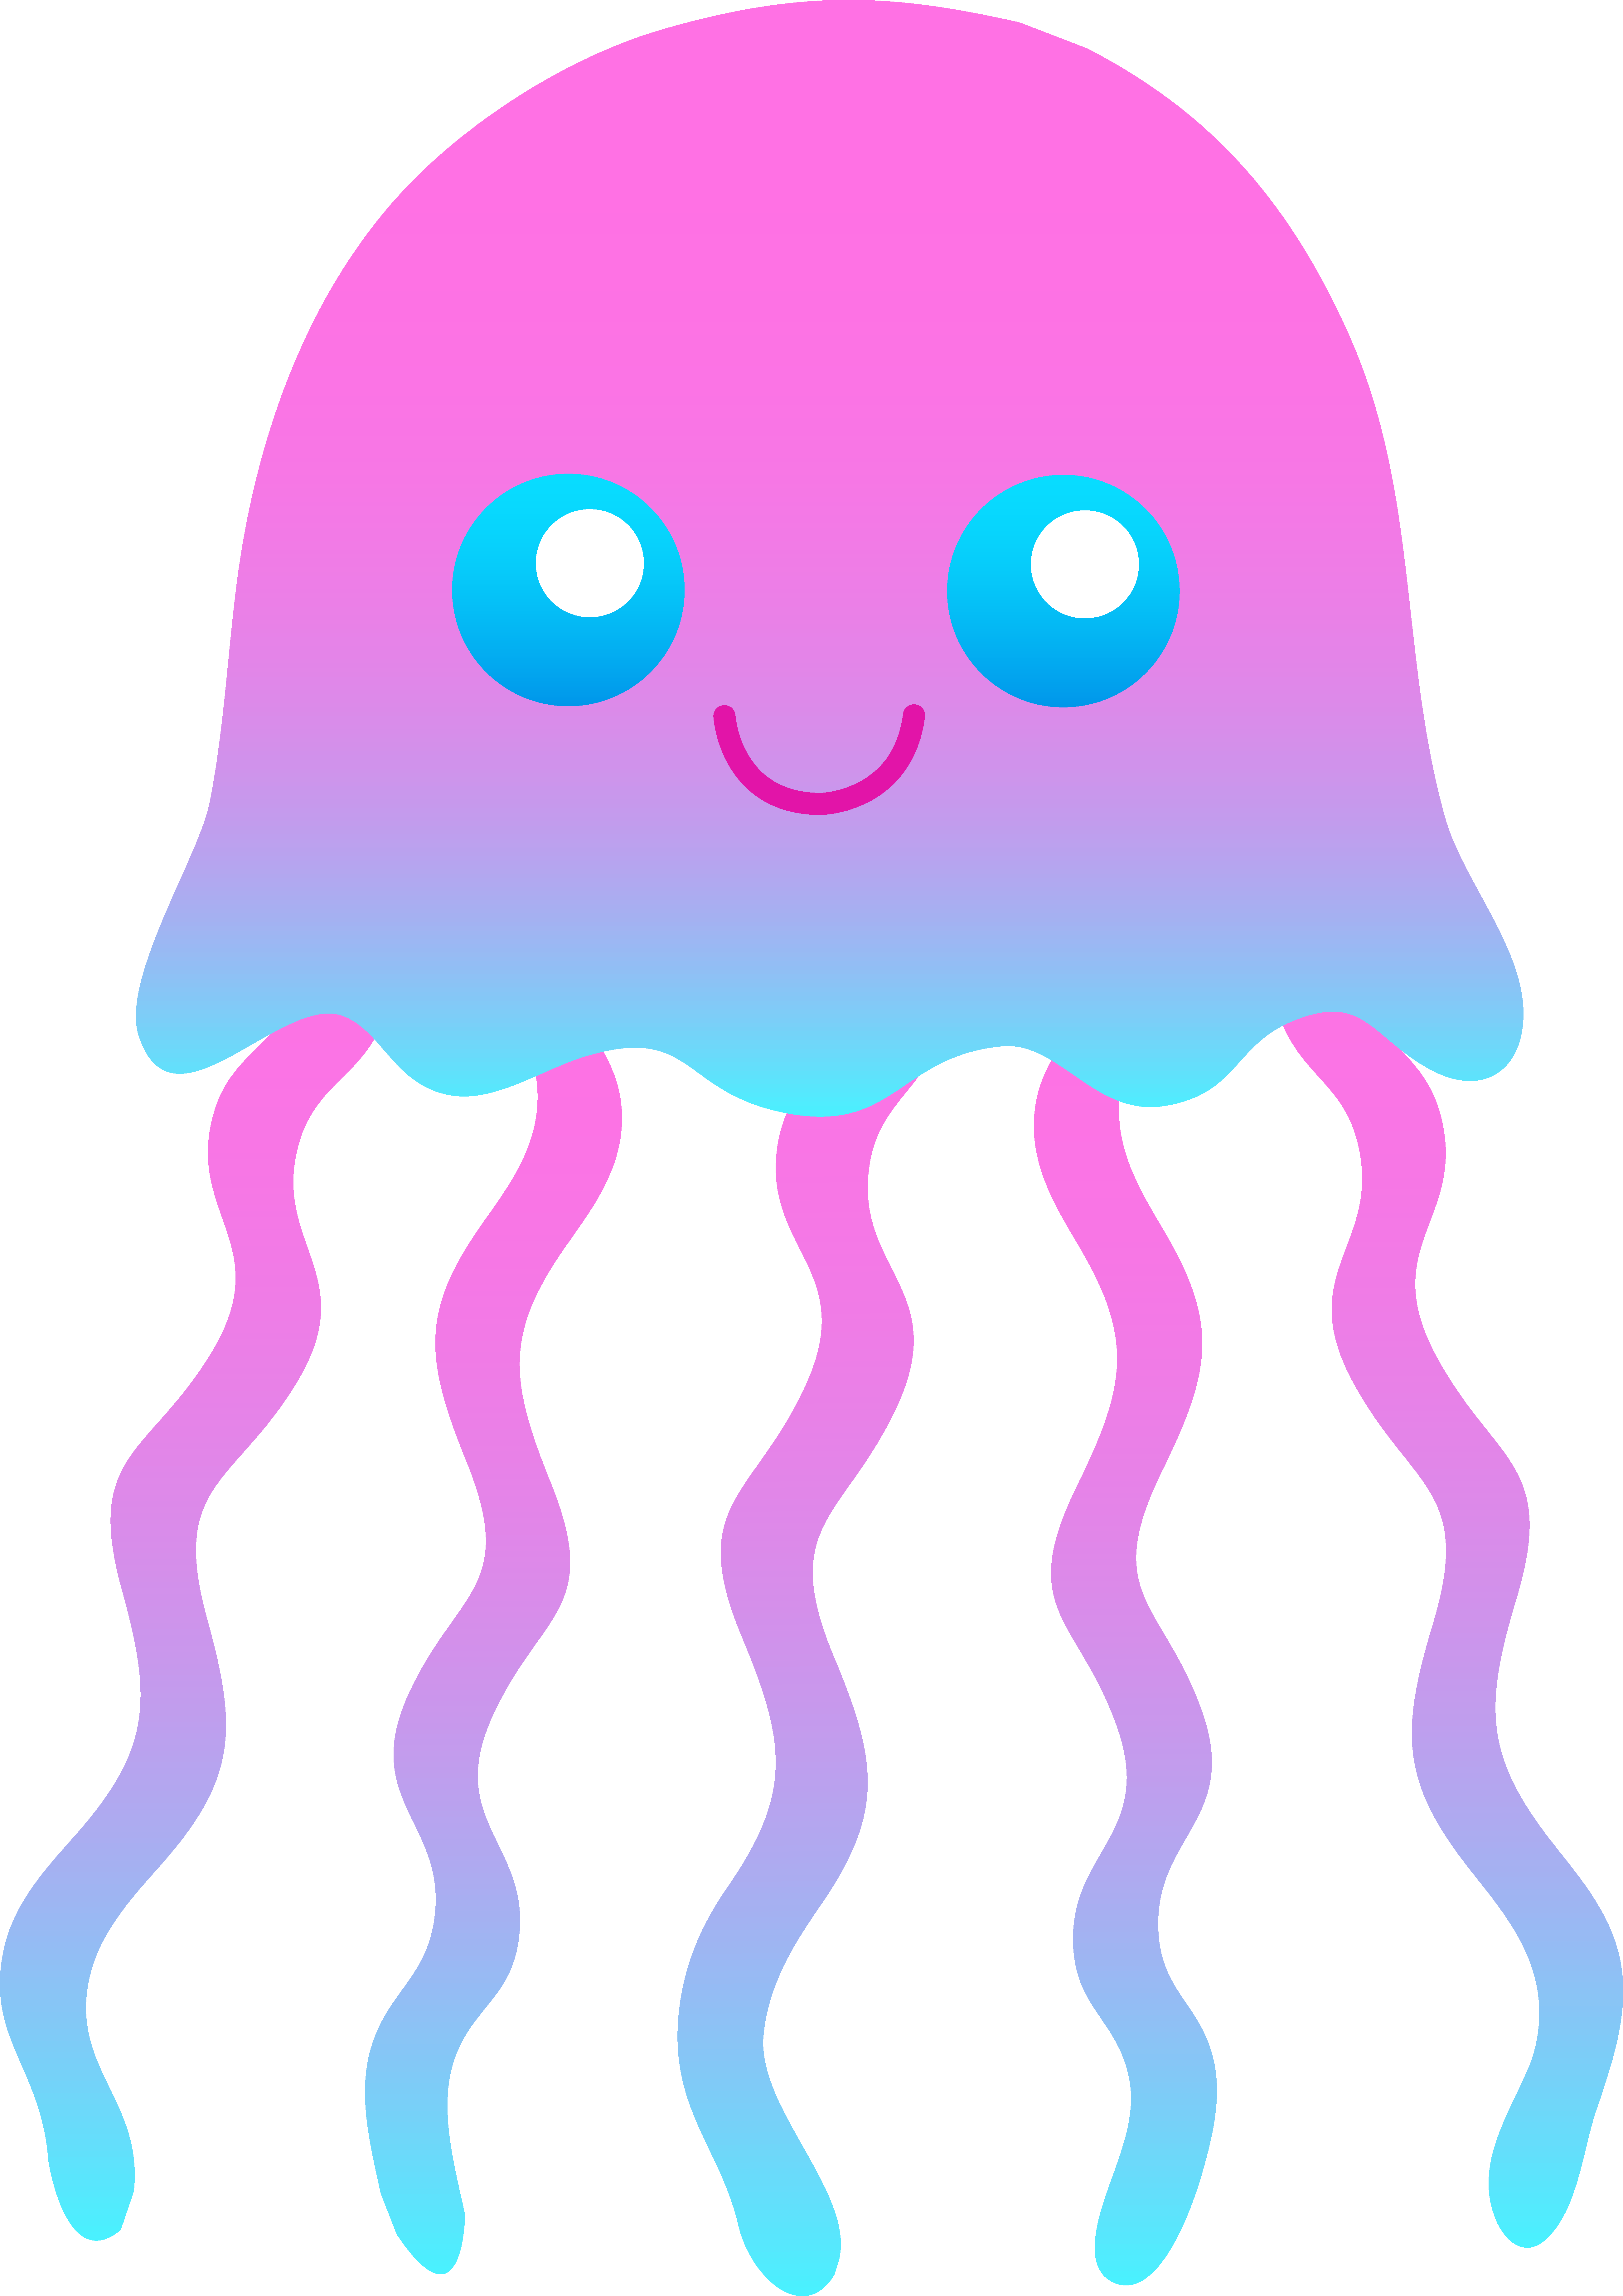 jellyfish svg clear background